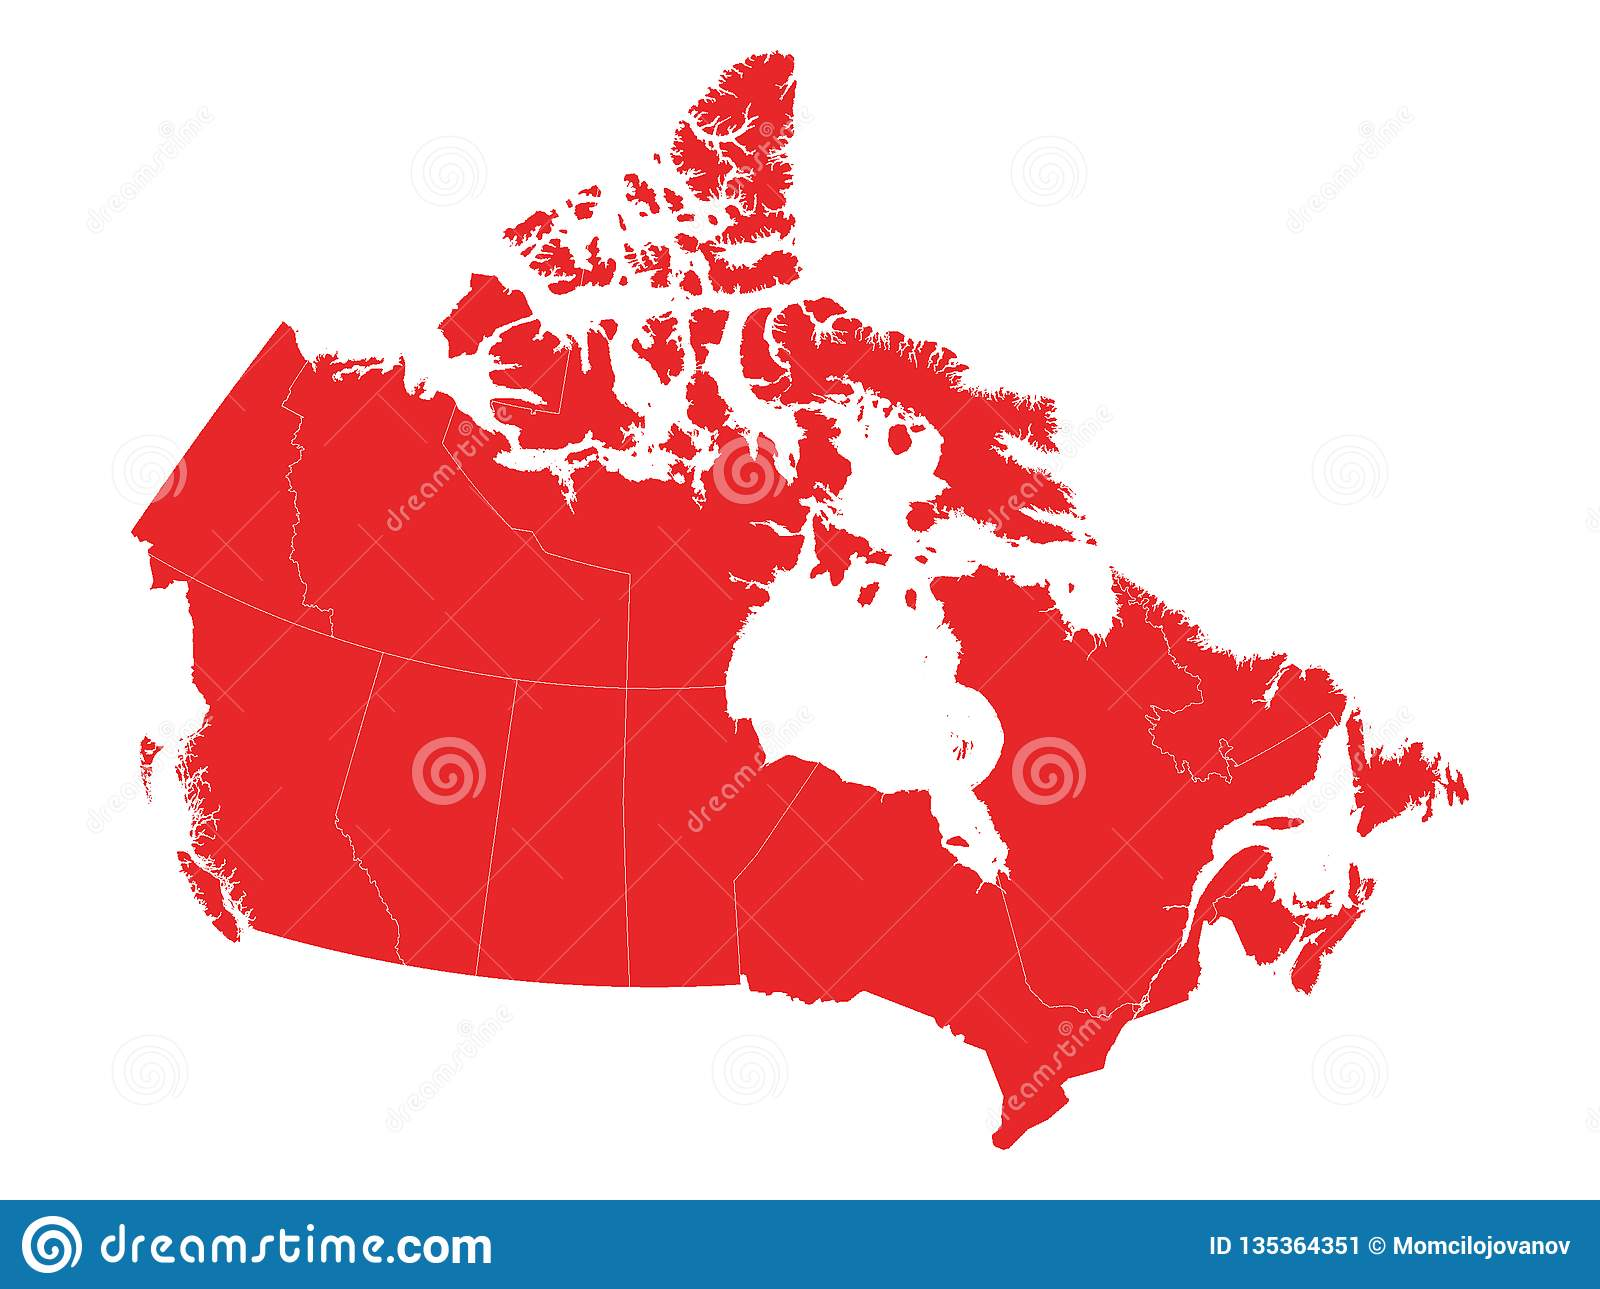 Maps Of Canada With Provinces Stock Vector - Illustration of ...